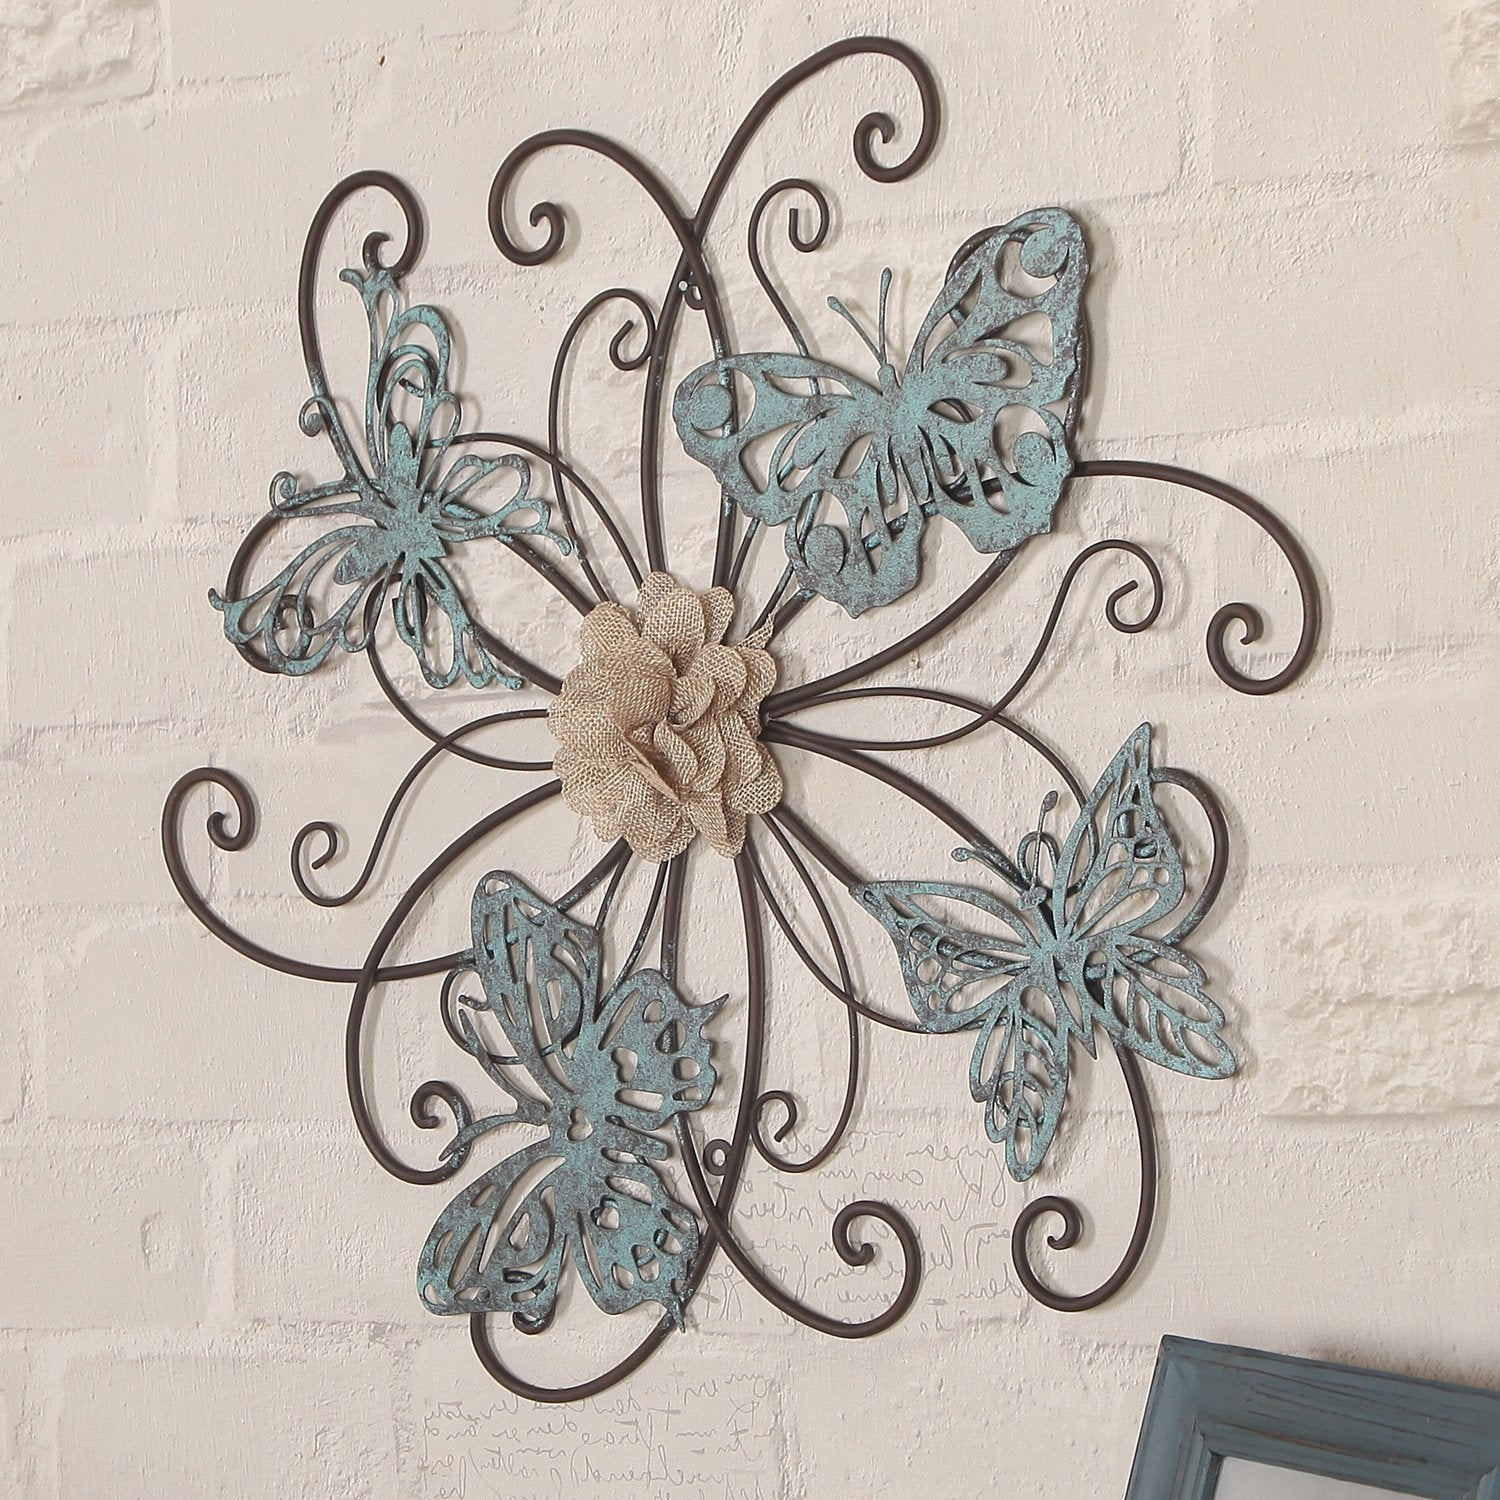 Shop Adeco Flower And Butterfly Urban Design Metal Wall Decor For With Widely Used Flower Urban Design Metal Wall Decor (View 8 of 20)